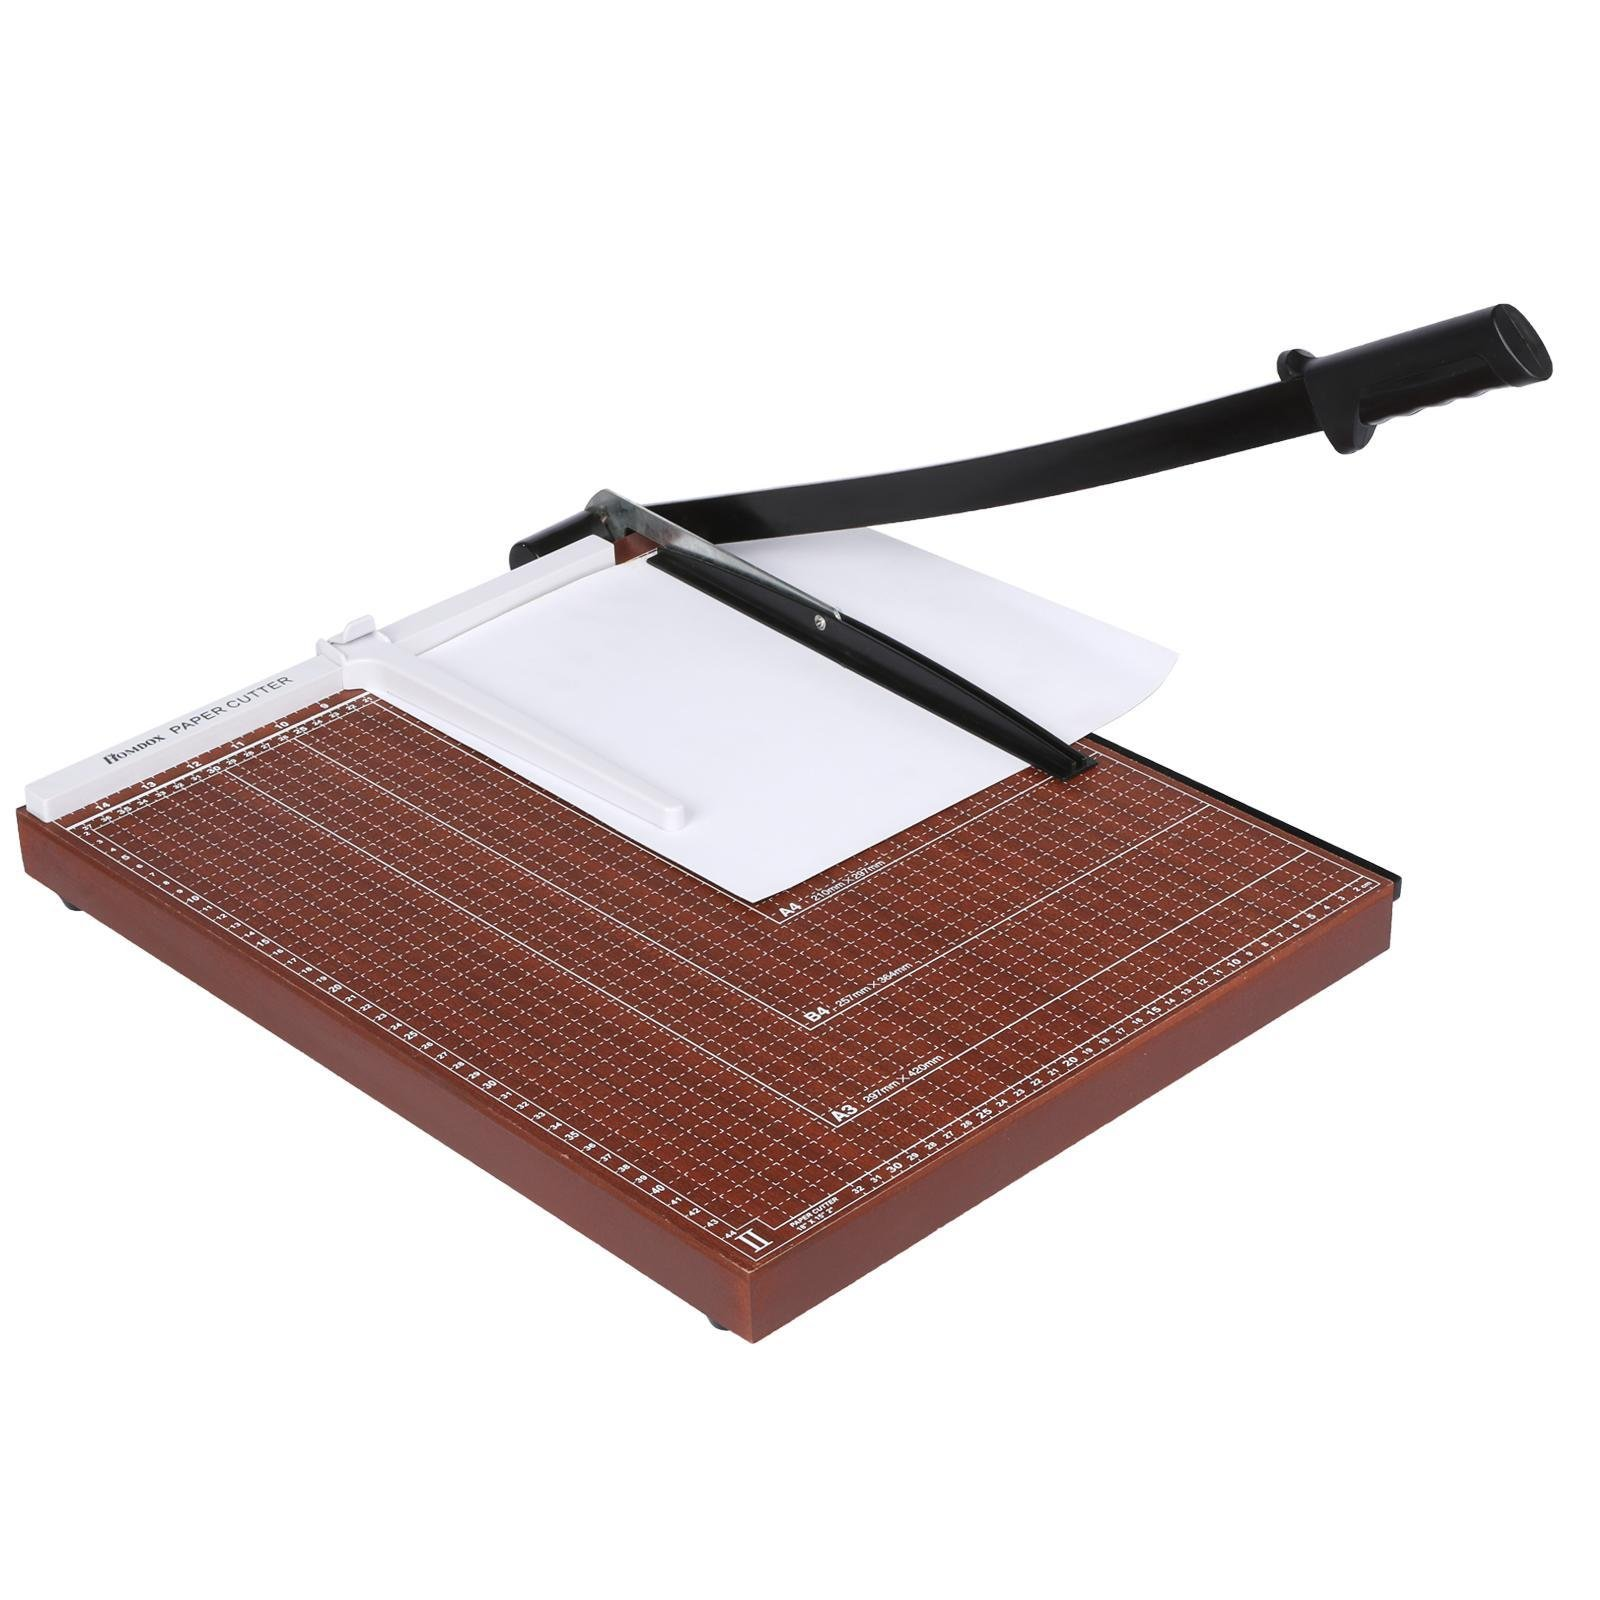 Pagacat 18 Inch Paper Trimmer Wood Professional Commercial Guillotine Paper Cutter for Home Office[US Stock]